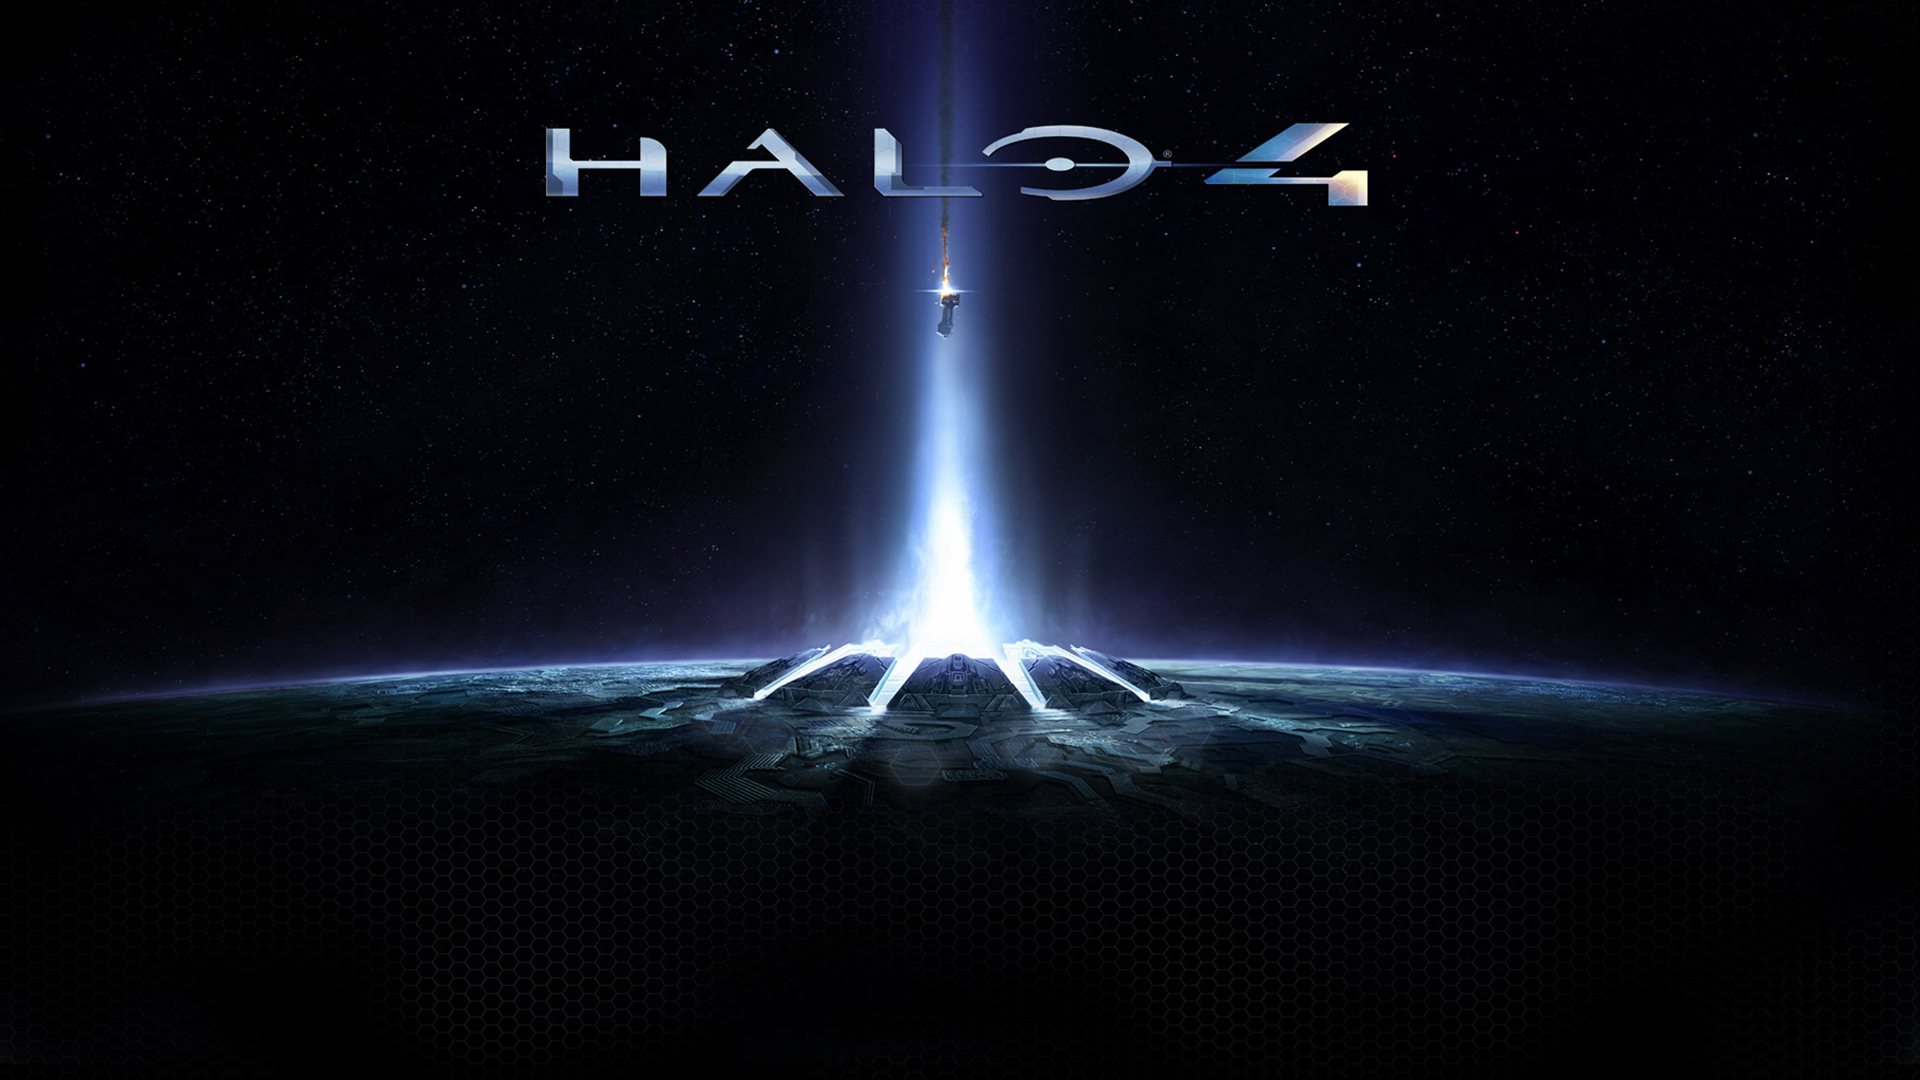 Halo 4 Wallpapers   SD HD   Gaming Now 1920x1080